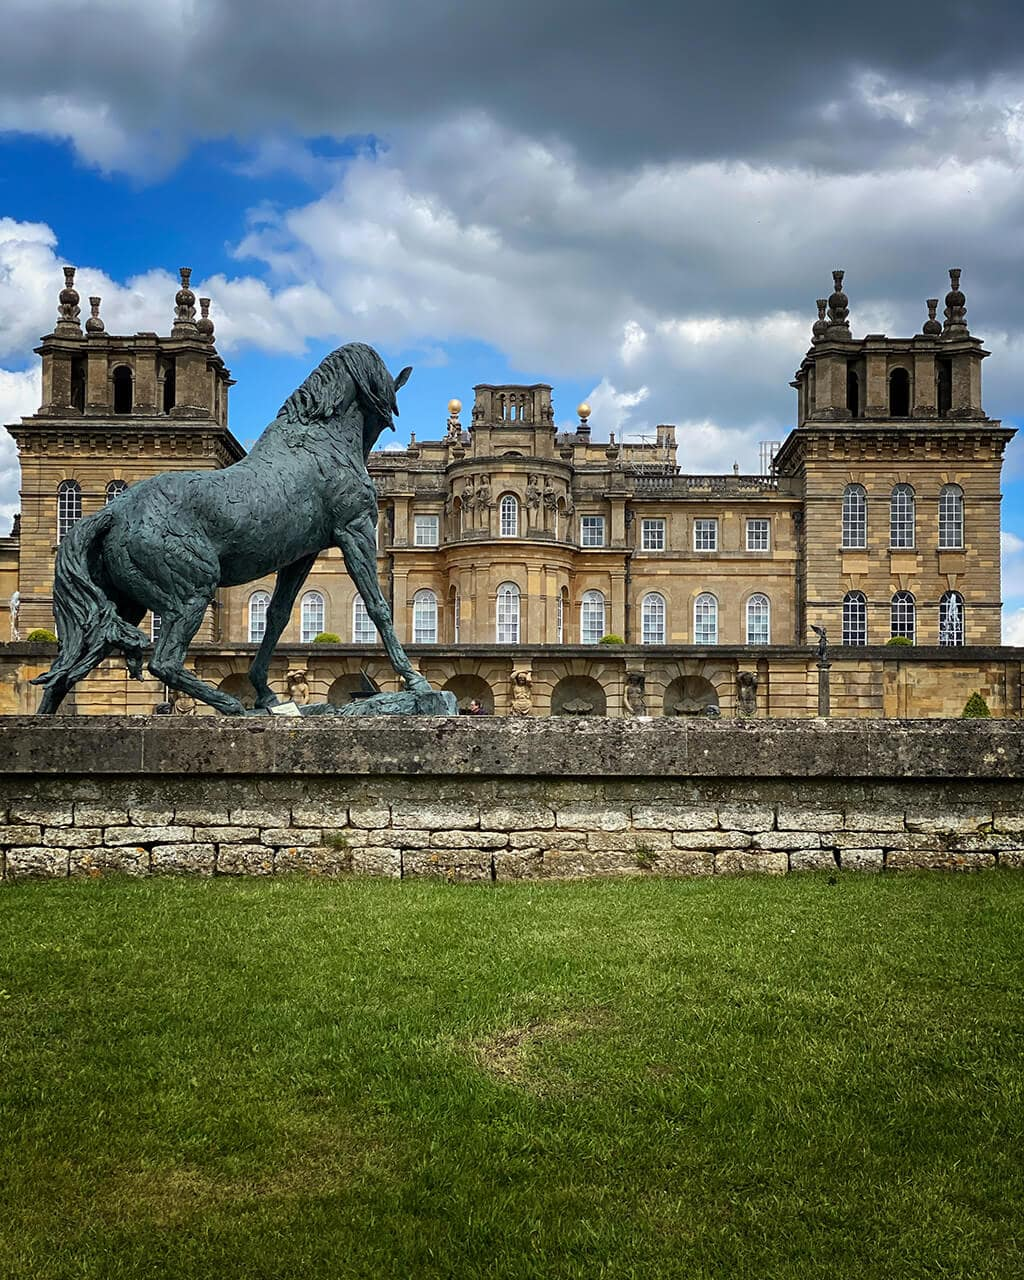 sculpture of horse in front of blenheim palace